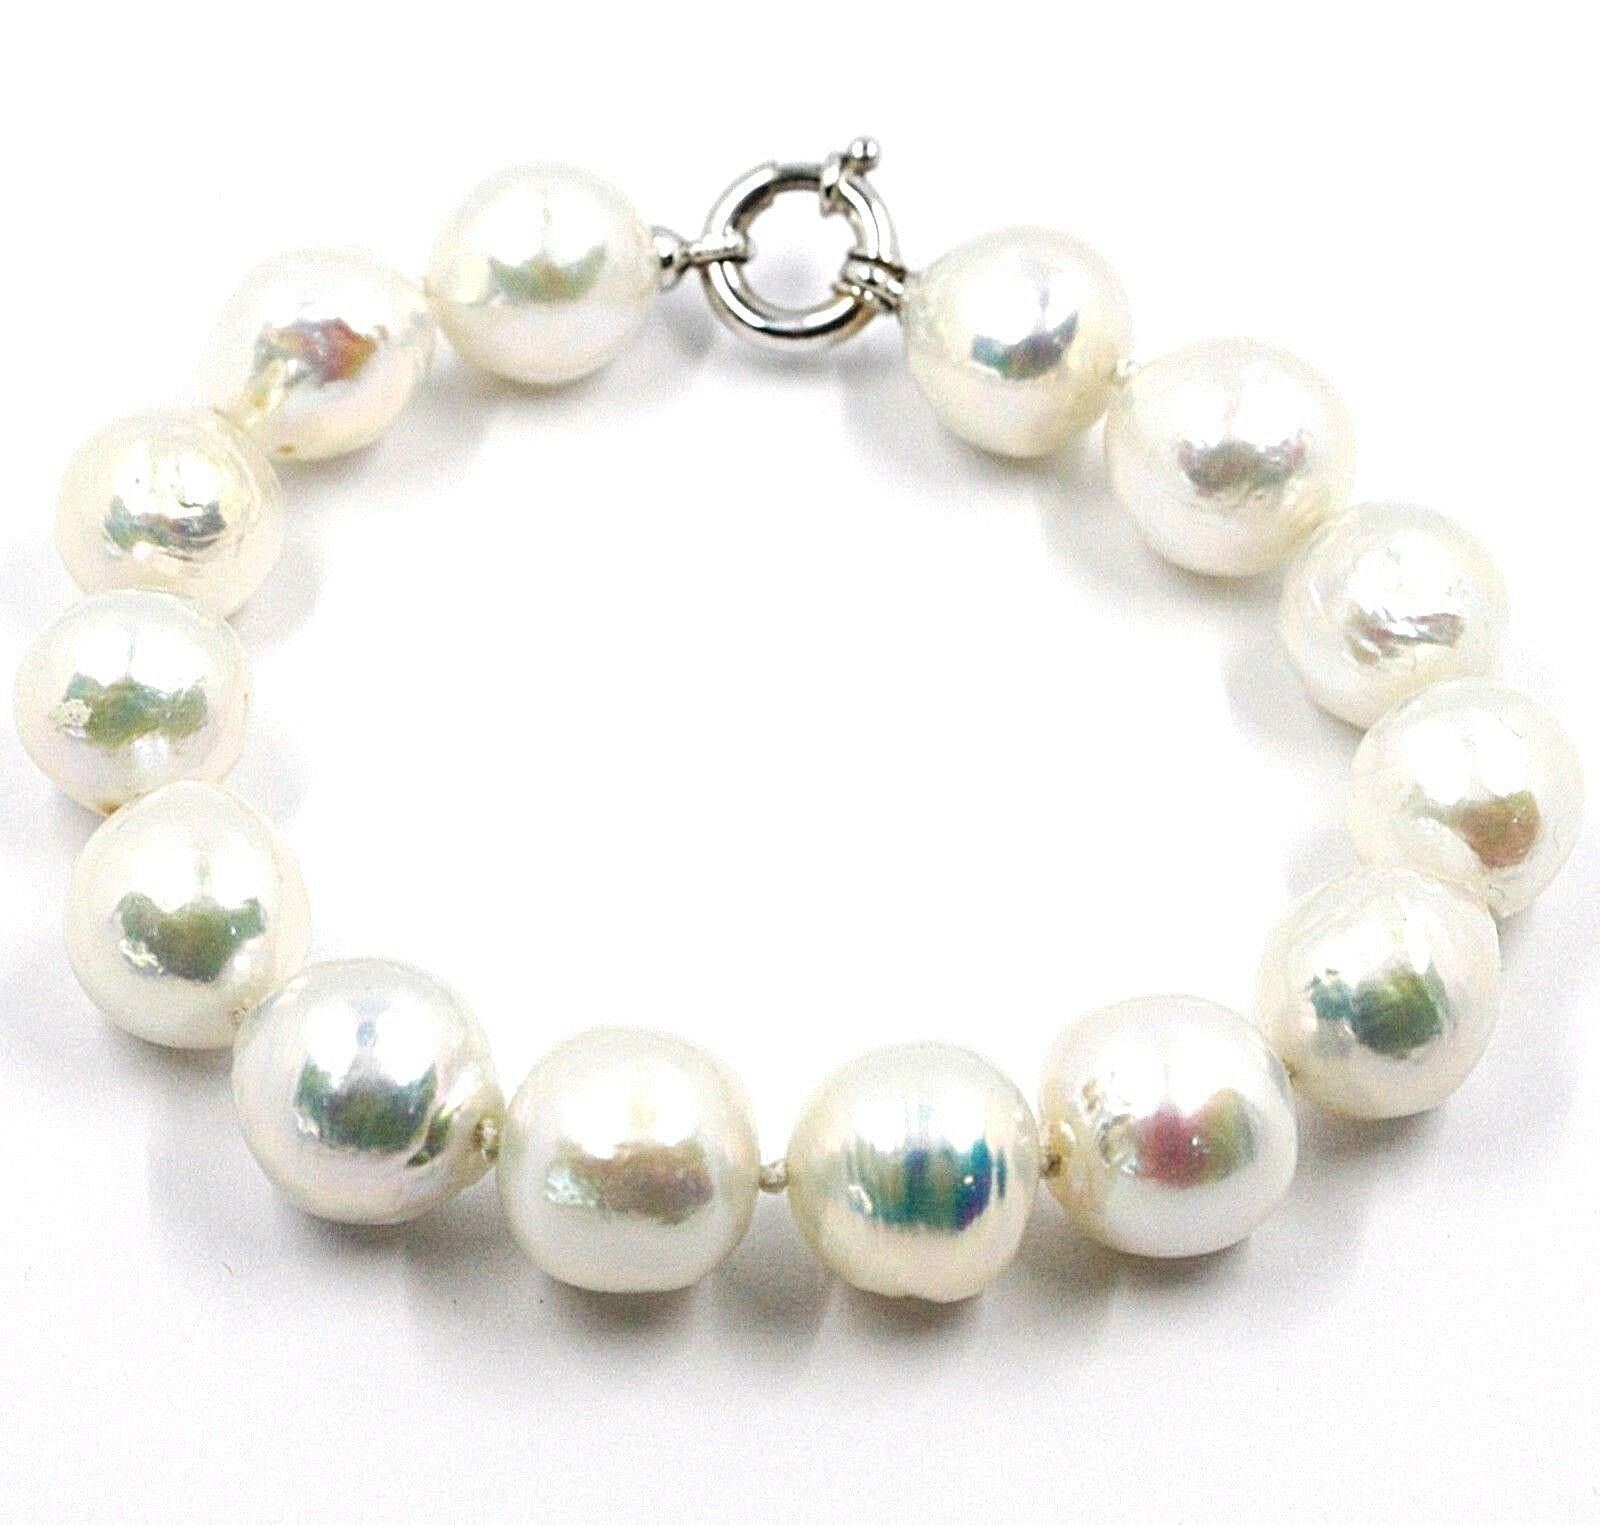 Bracelet White Gold 18K, Pearls Large 13 mm, White, Freshwater, Baroque Style